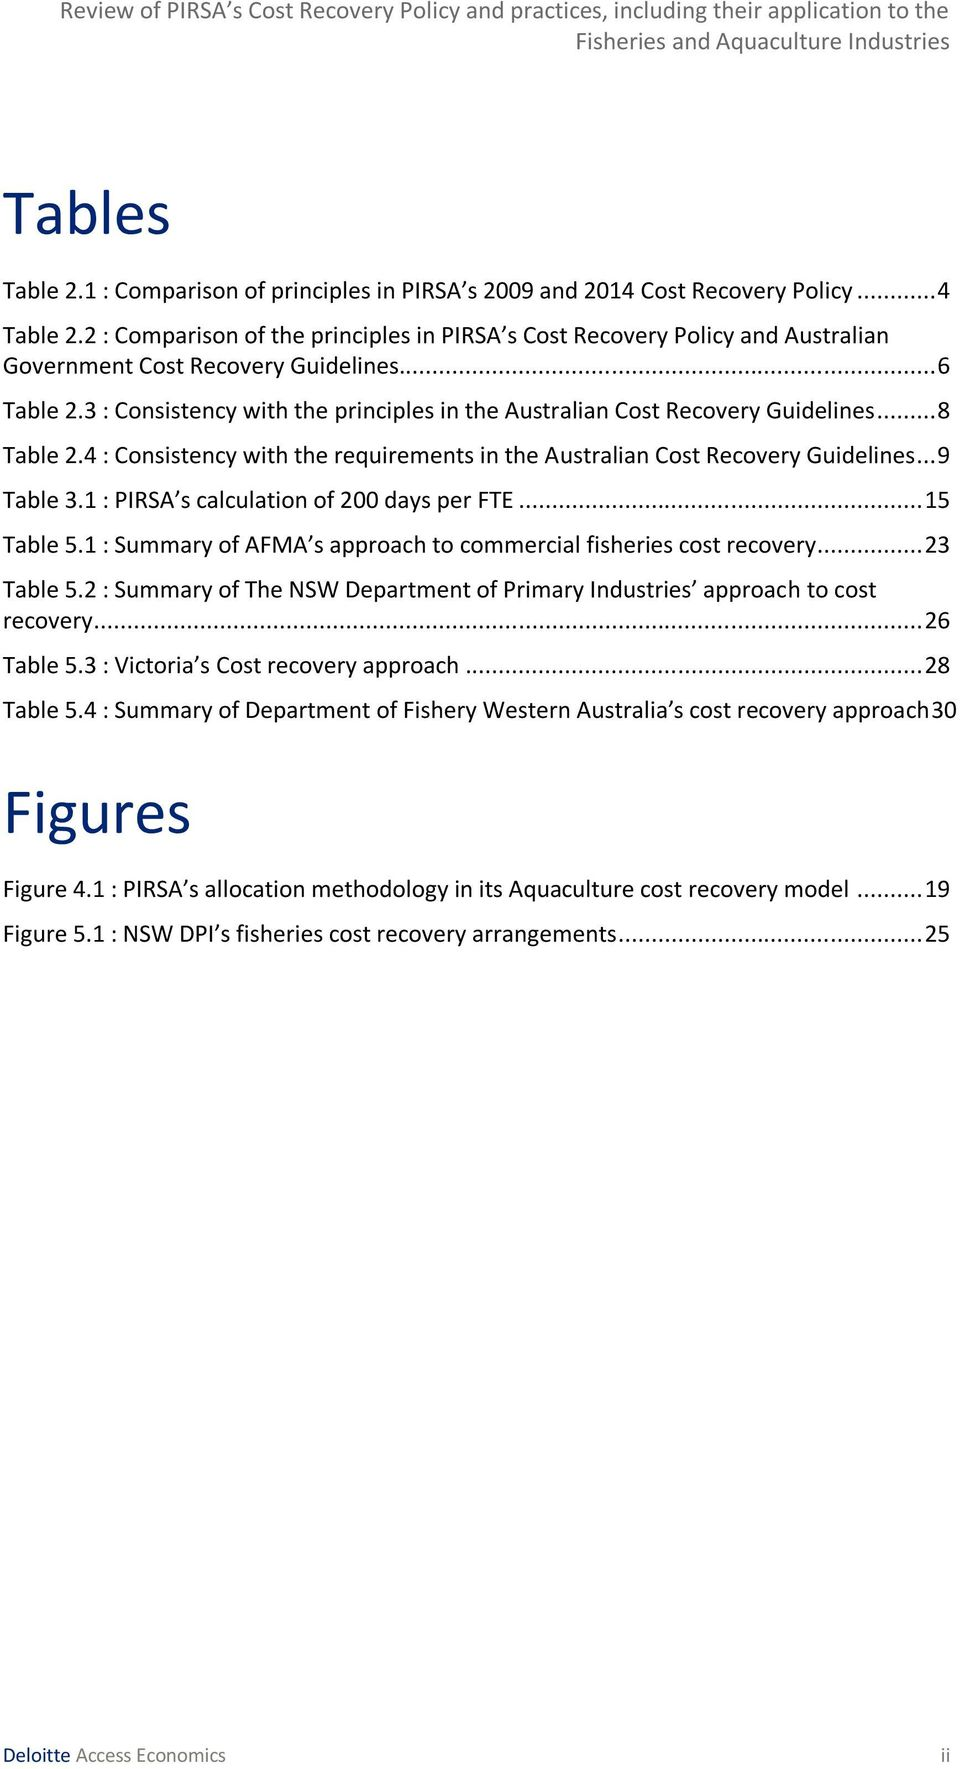 3 : Consistency with the principles in the Australian Cost Recovery Guidelines... 8 Table 2.4 : Consistency with the requirements in the Australian Cost Recovery Guidelines... 9 Table 3.